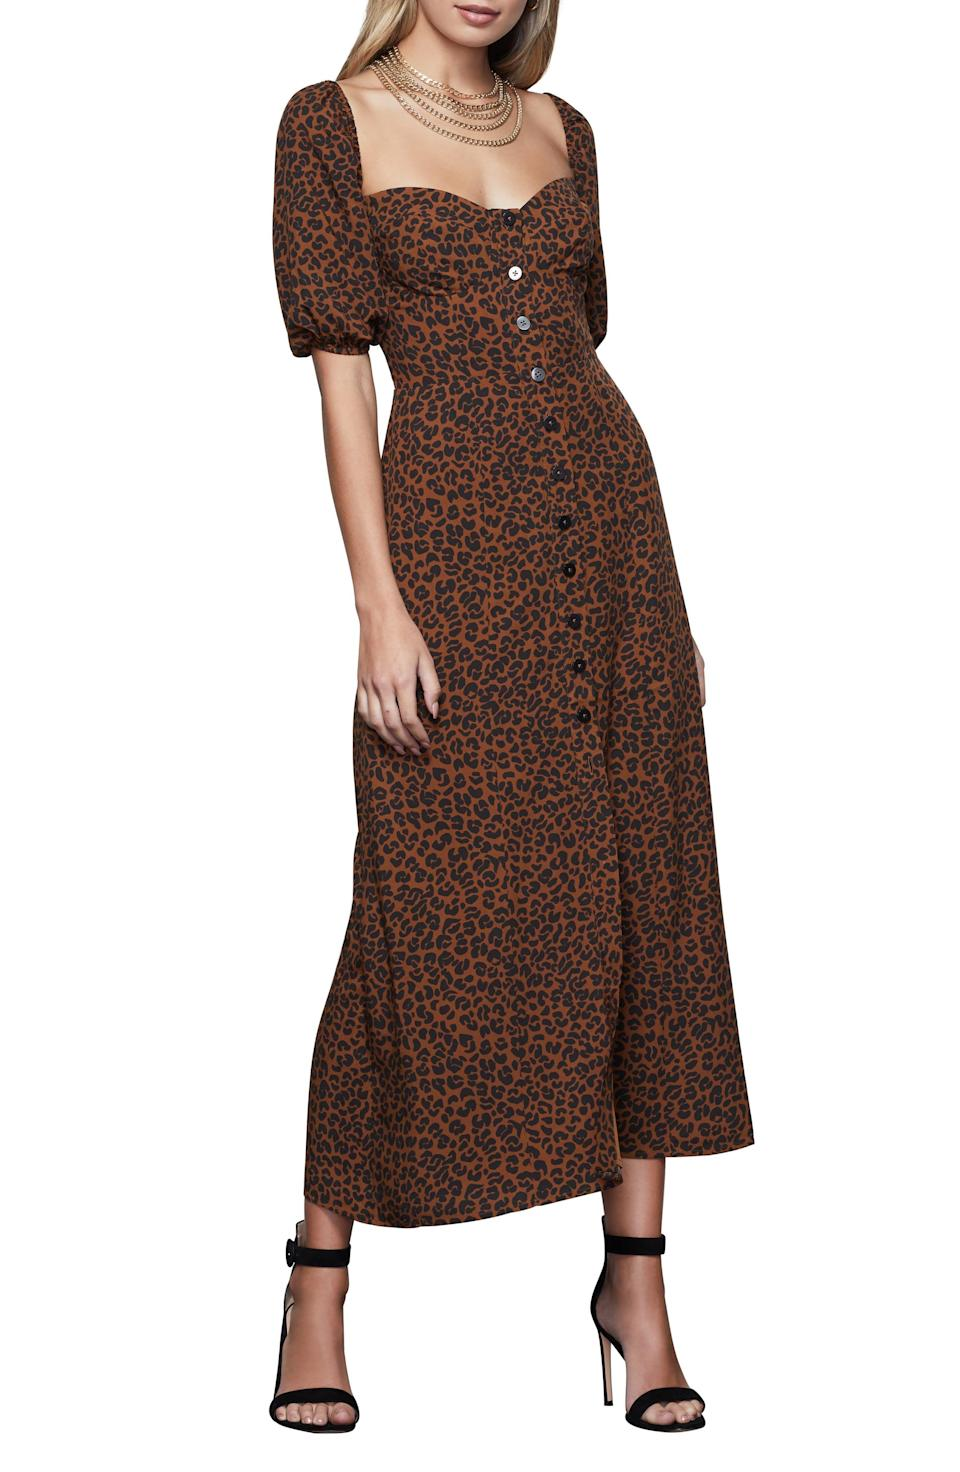 """<p><strong>GOOD AMERICAN</strong></p><p>nordstrom.com</p><p><strong>$127.20</strong></p><p><a href=""""https://go.redirectingat.com?id=74968X1596630&url=https%3A%2F%2Fwww.nordstrom.com%2Fs%2Fgood-american-corset-leopard-print-puff-sleeve-maxi-dress-regular-plus-size%2F5714920&sref=https%3A%2F%2Fwww.womenshealthmag.com%2Flife%2Fg36173394%2Fsummer-wedding-guest-dresses%2F"""" rel=""""nofollow noopener"""" target=""""_blank"""" data-ylk=""""slk:Shop Now"""" class=""""link rapid-noclick-resp"""">Shop Now</a></p><p>Who doesn't love a puff sleeve to elevate a look?! Best part: This Good American corset dress also comes in plus sizes!</p>"""